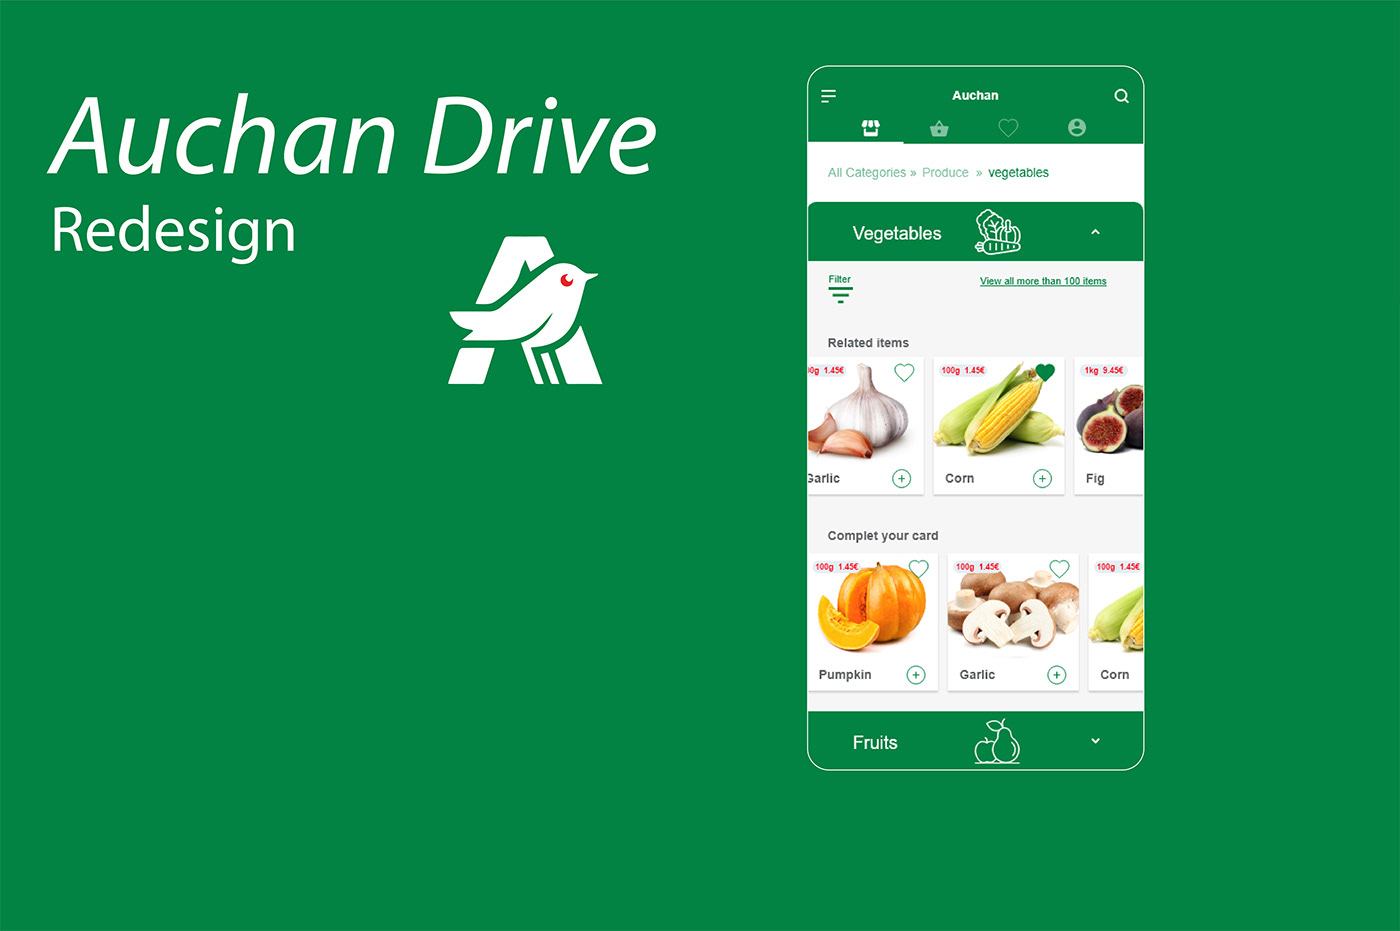 application mobile,design,drive,Grocery,UI,ux,Auchan